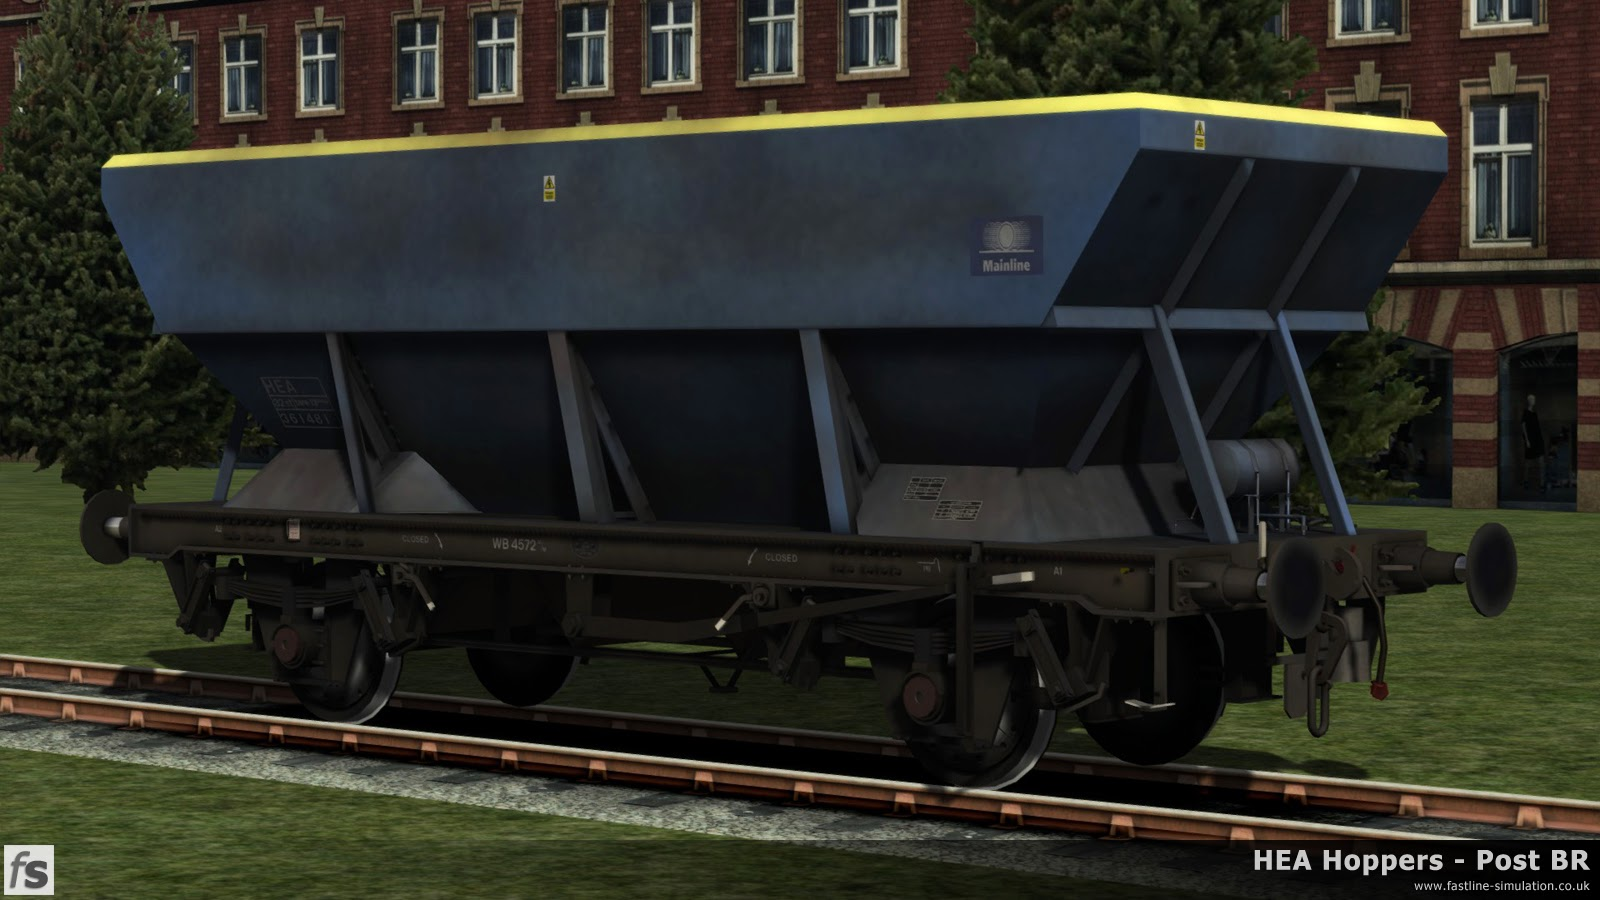 HEA Hoppers - Post BR: What would have been a later built HEA hopper with an offset ladders (now removed) in faded and grubby Mainline livery for Train Simulator 2014.